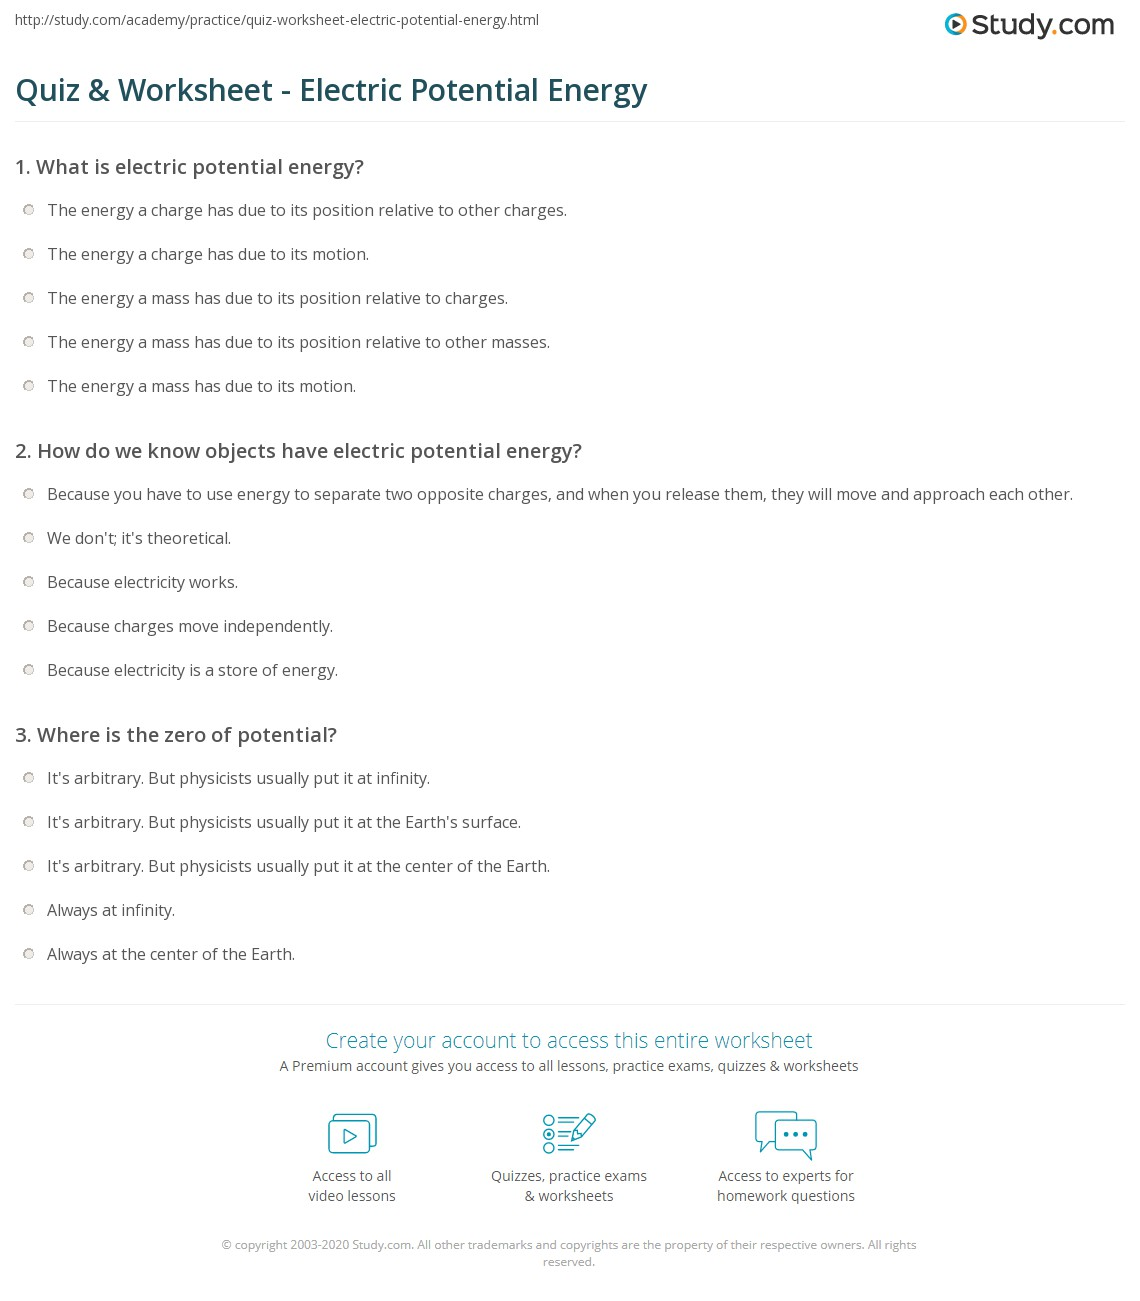 quiz & worksheet - electric potential energy | study